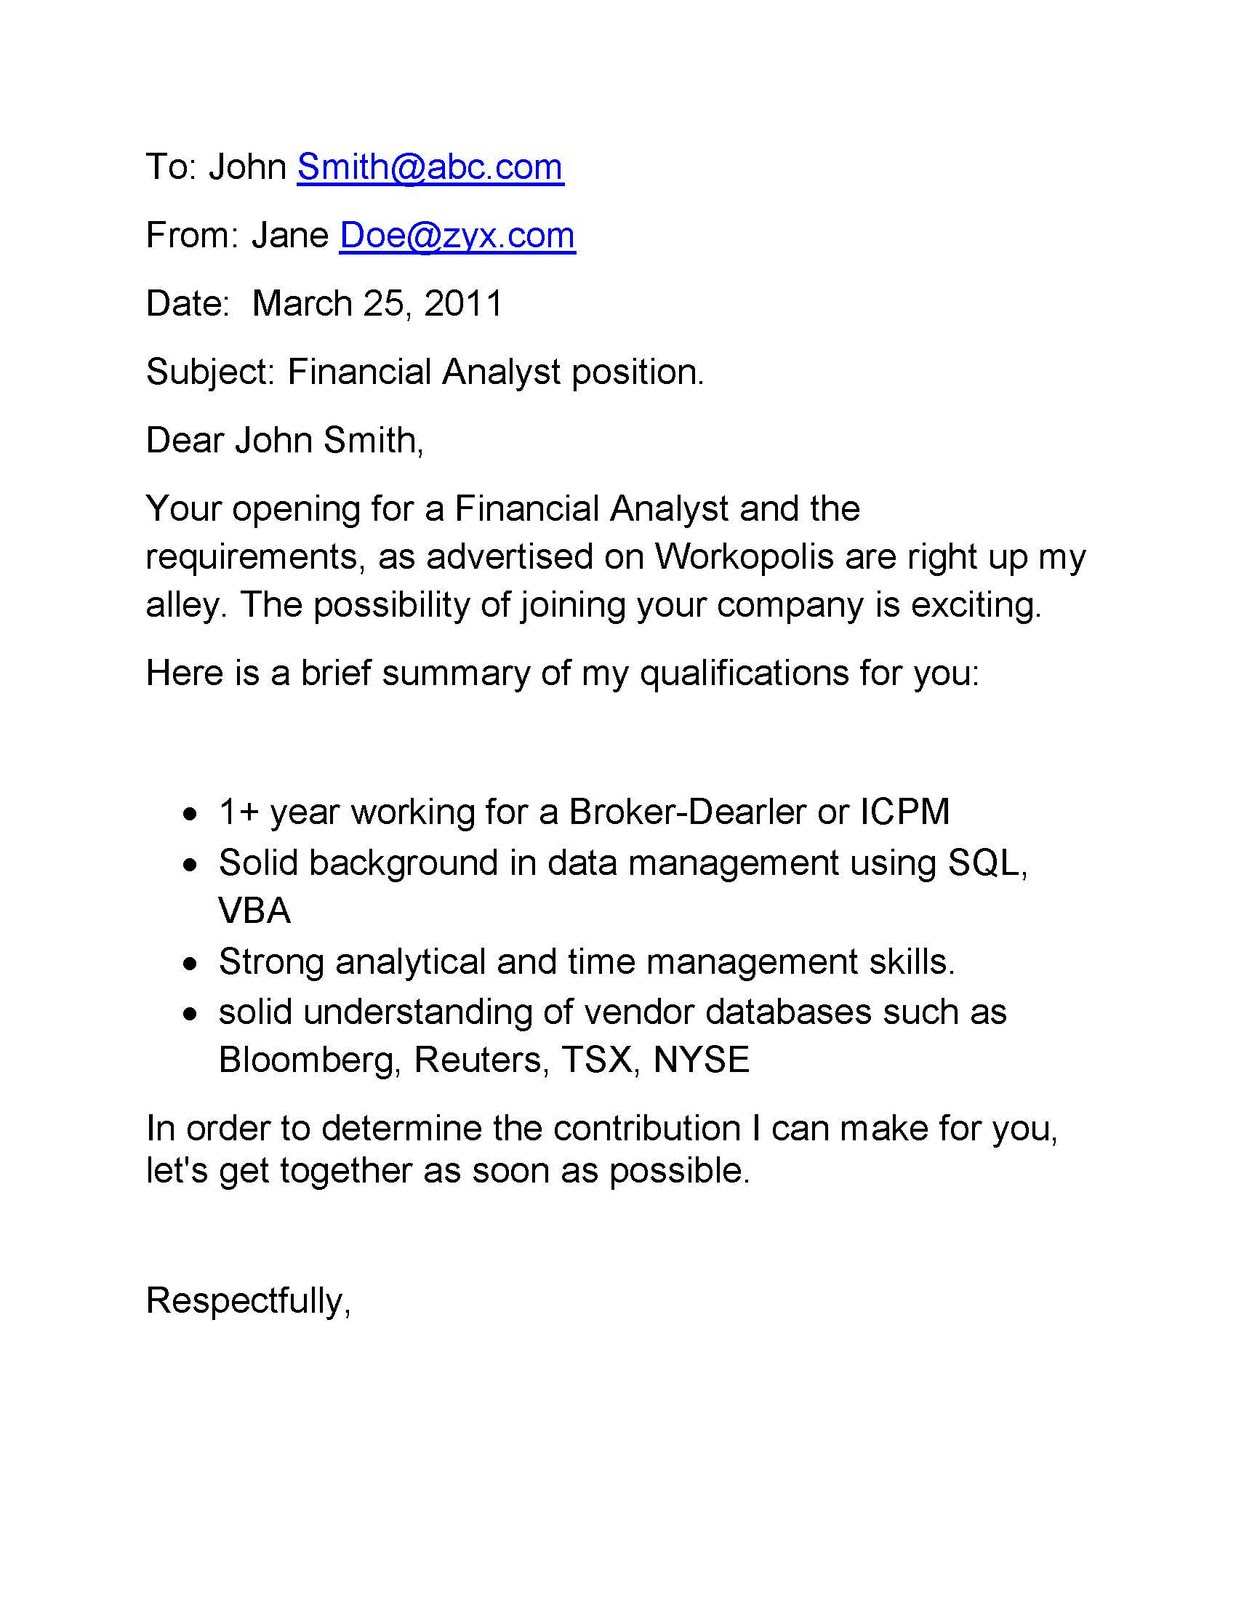 cover letter examples senior financial analyst cover letter cover letter examples senior financial analyst financial analyst cover letter sample cover letter example investment banking